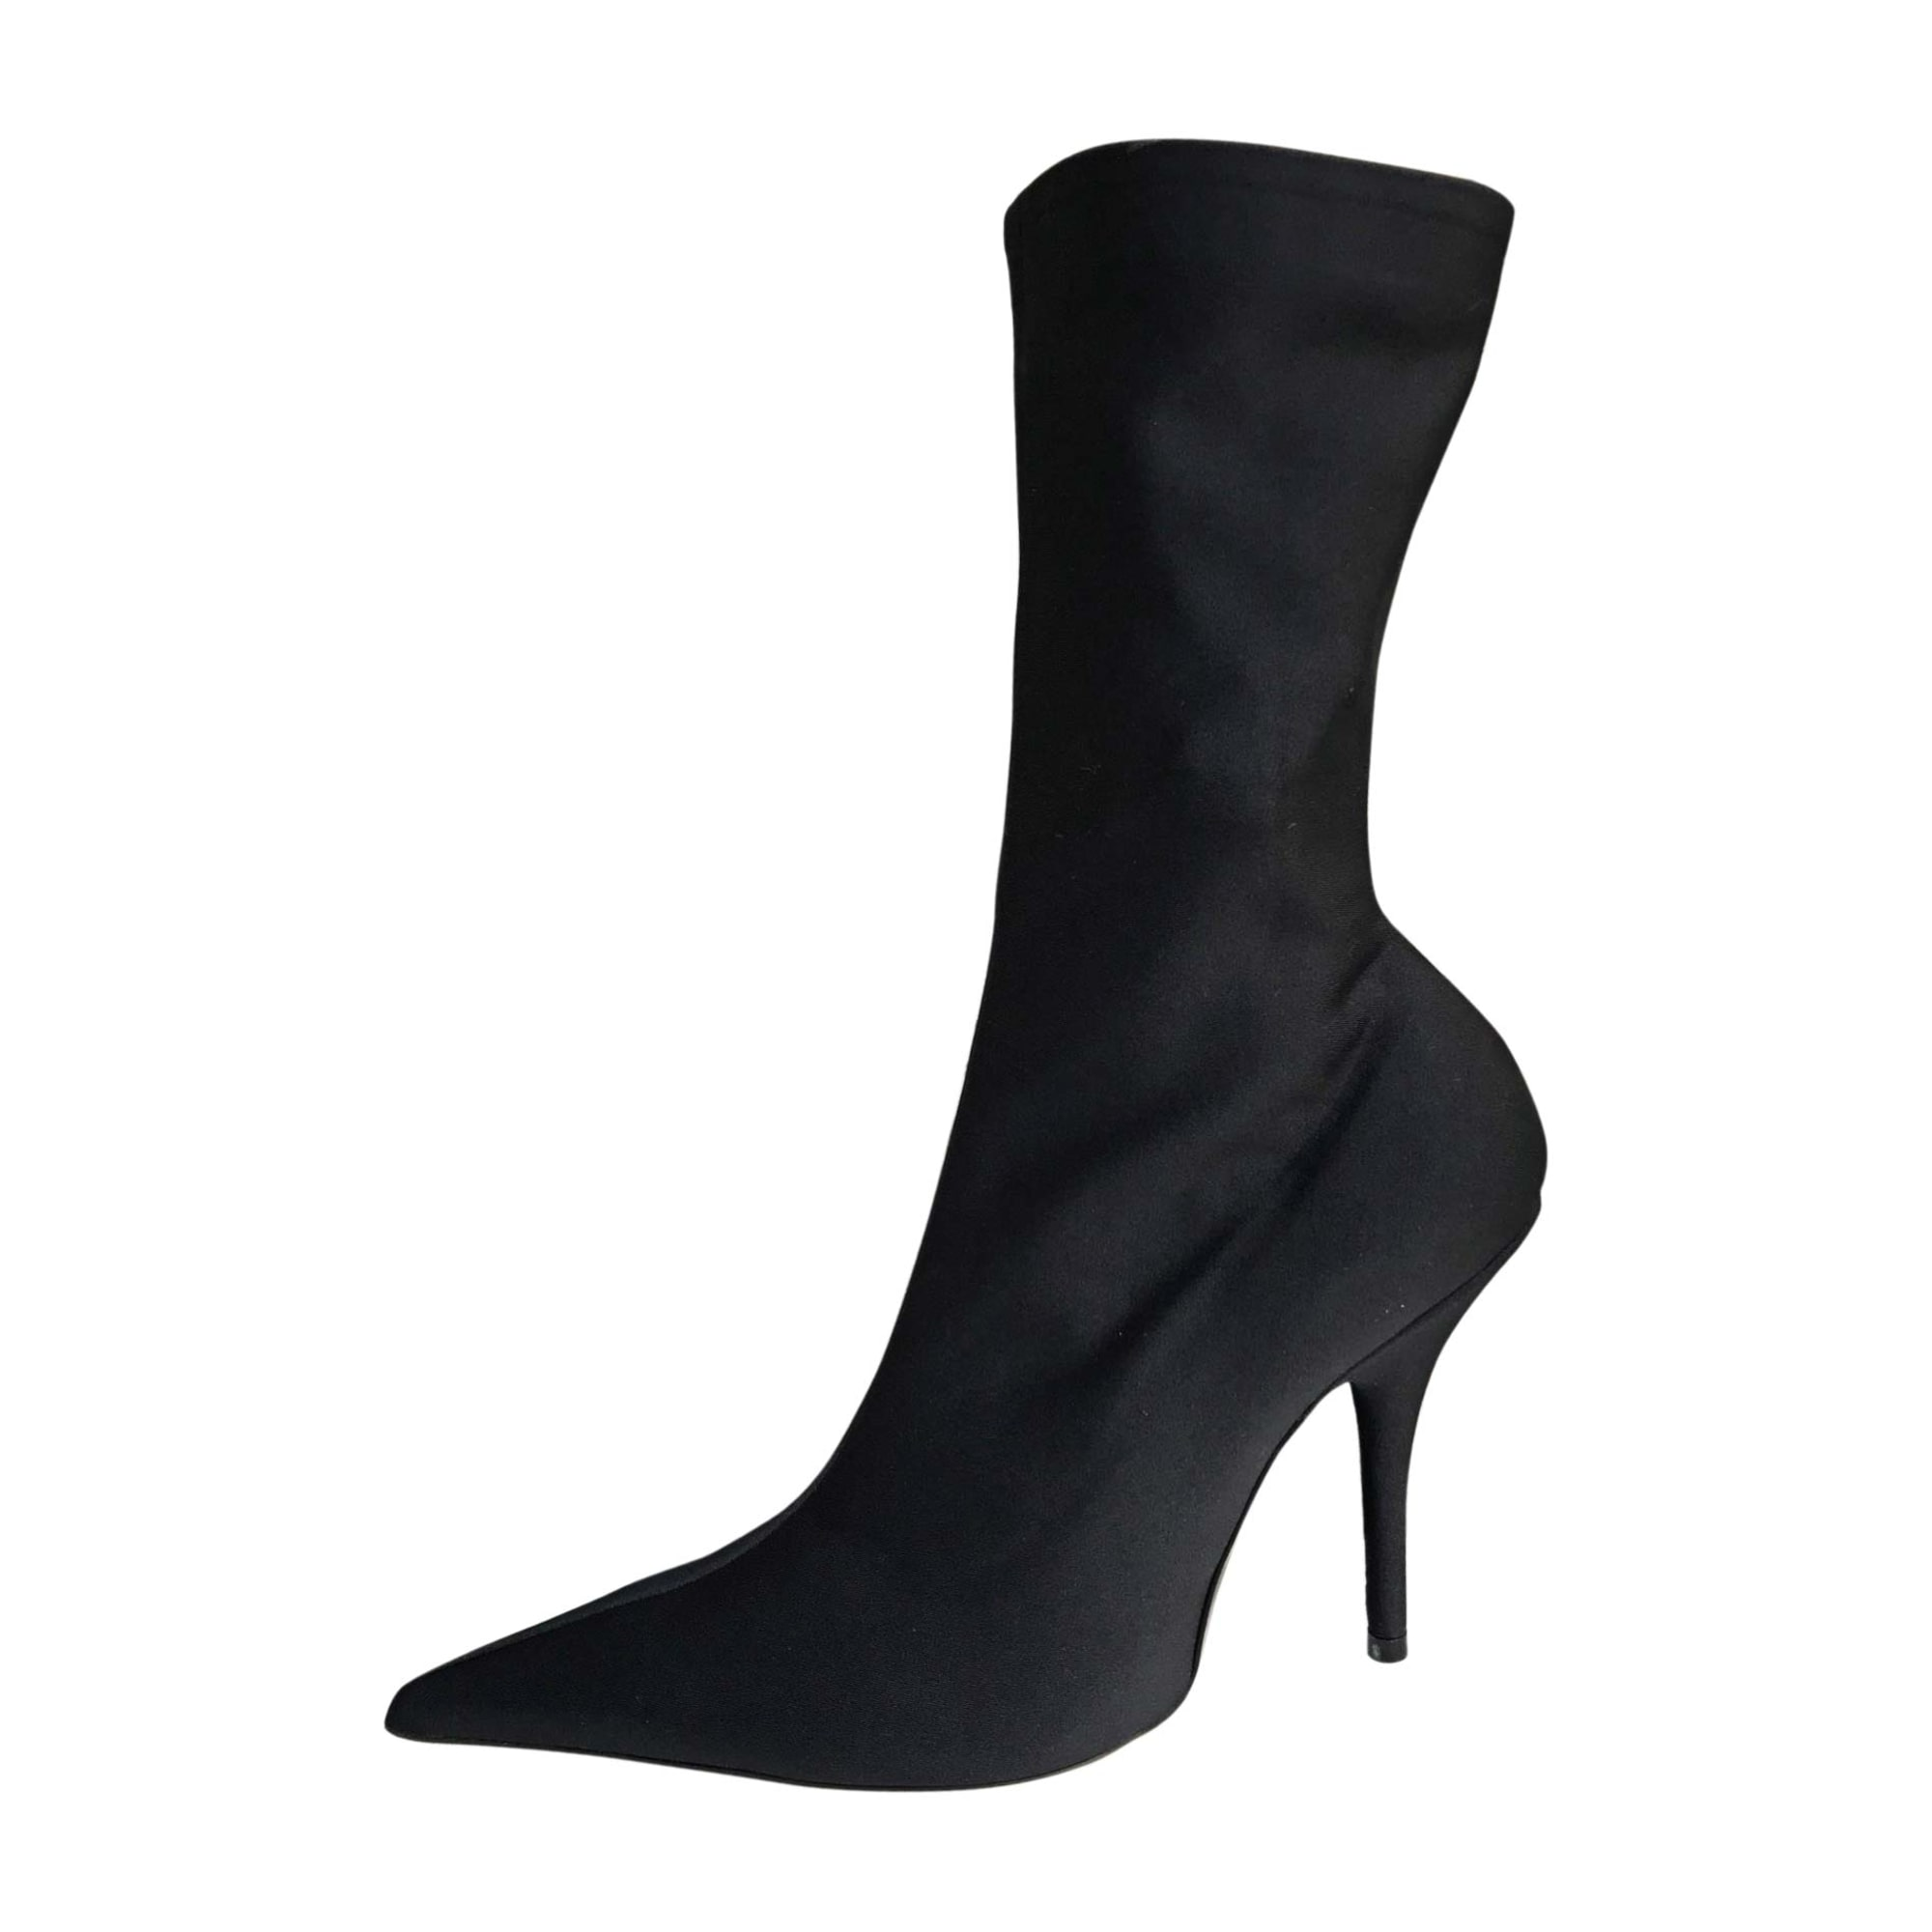 Bottines & low boots à talons BALENCIAGA Noir